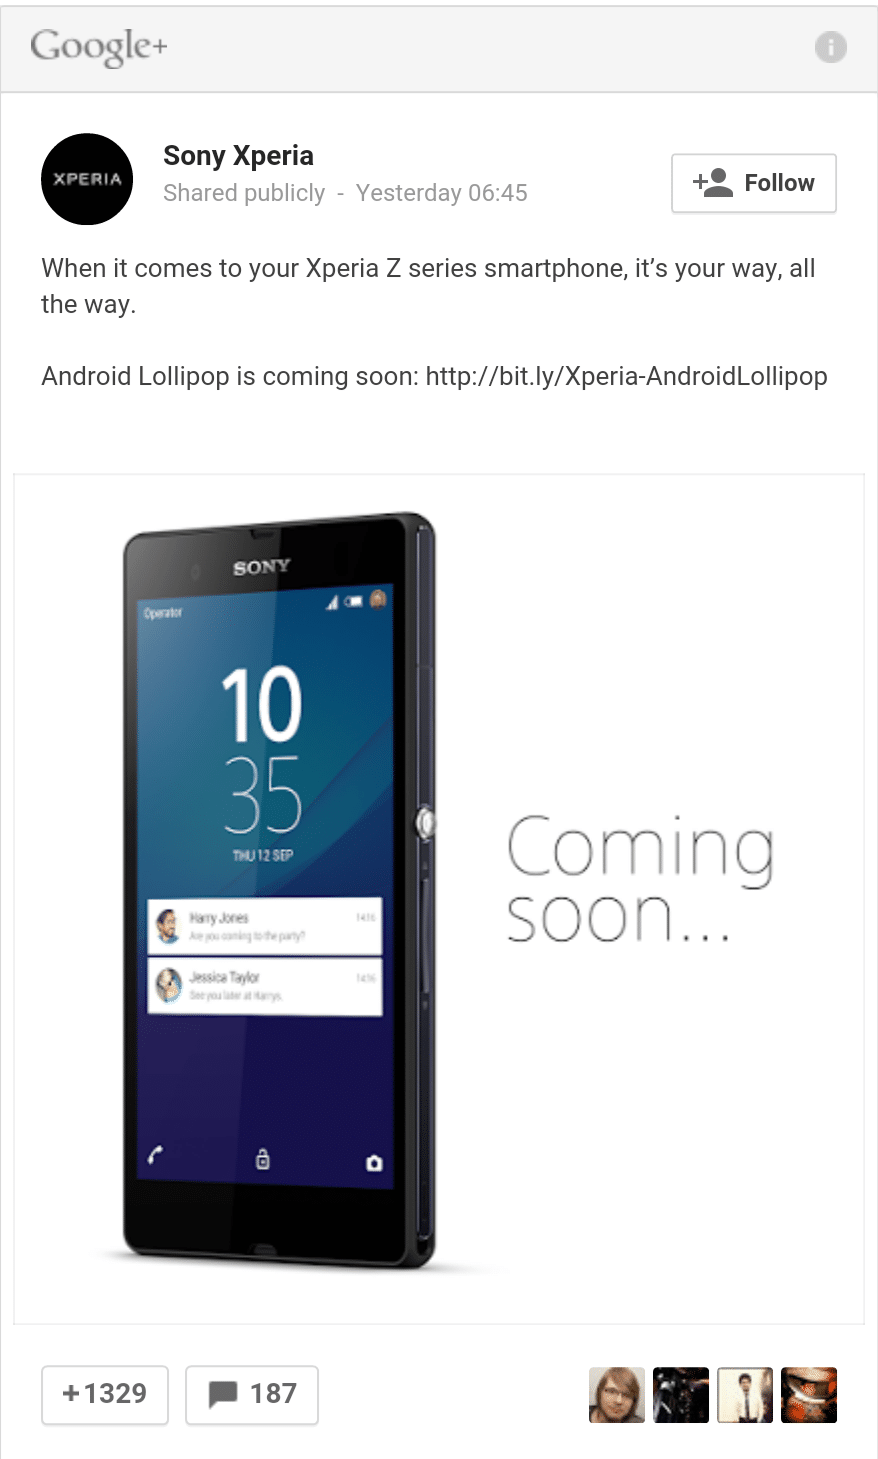 Sony Google+ teases Xperia Z android lollipop